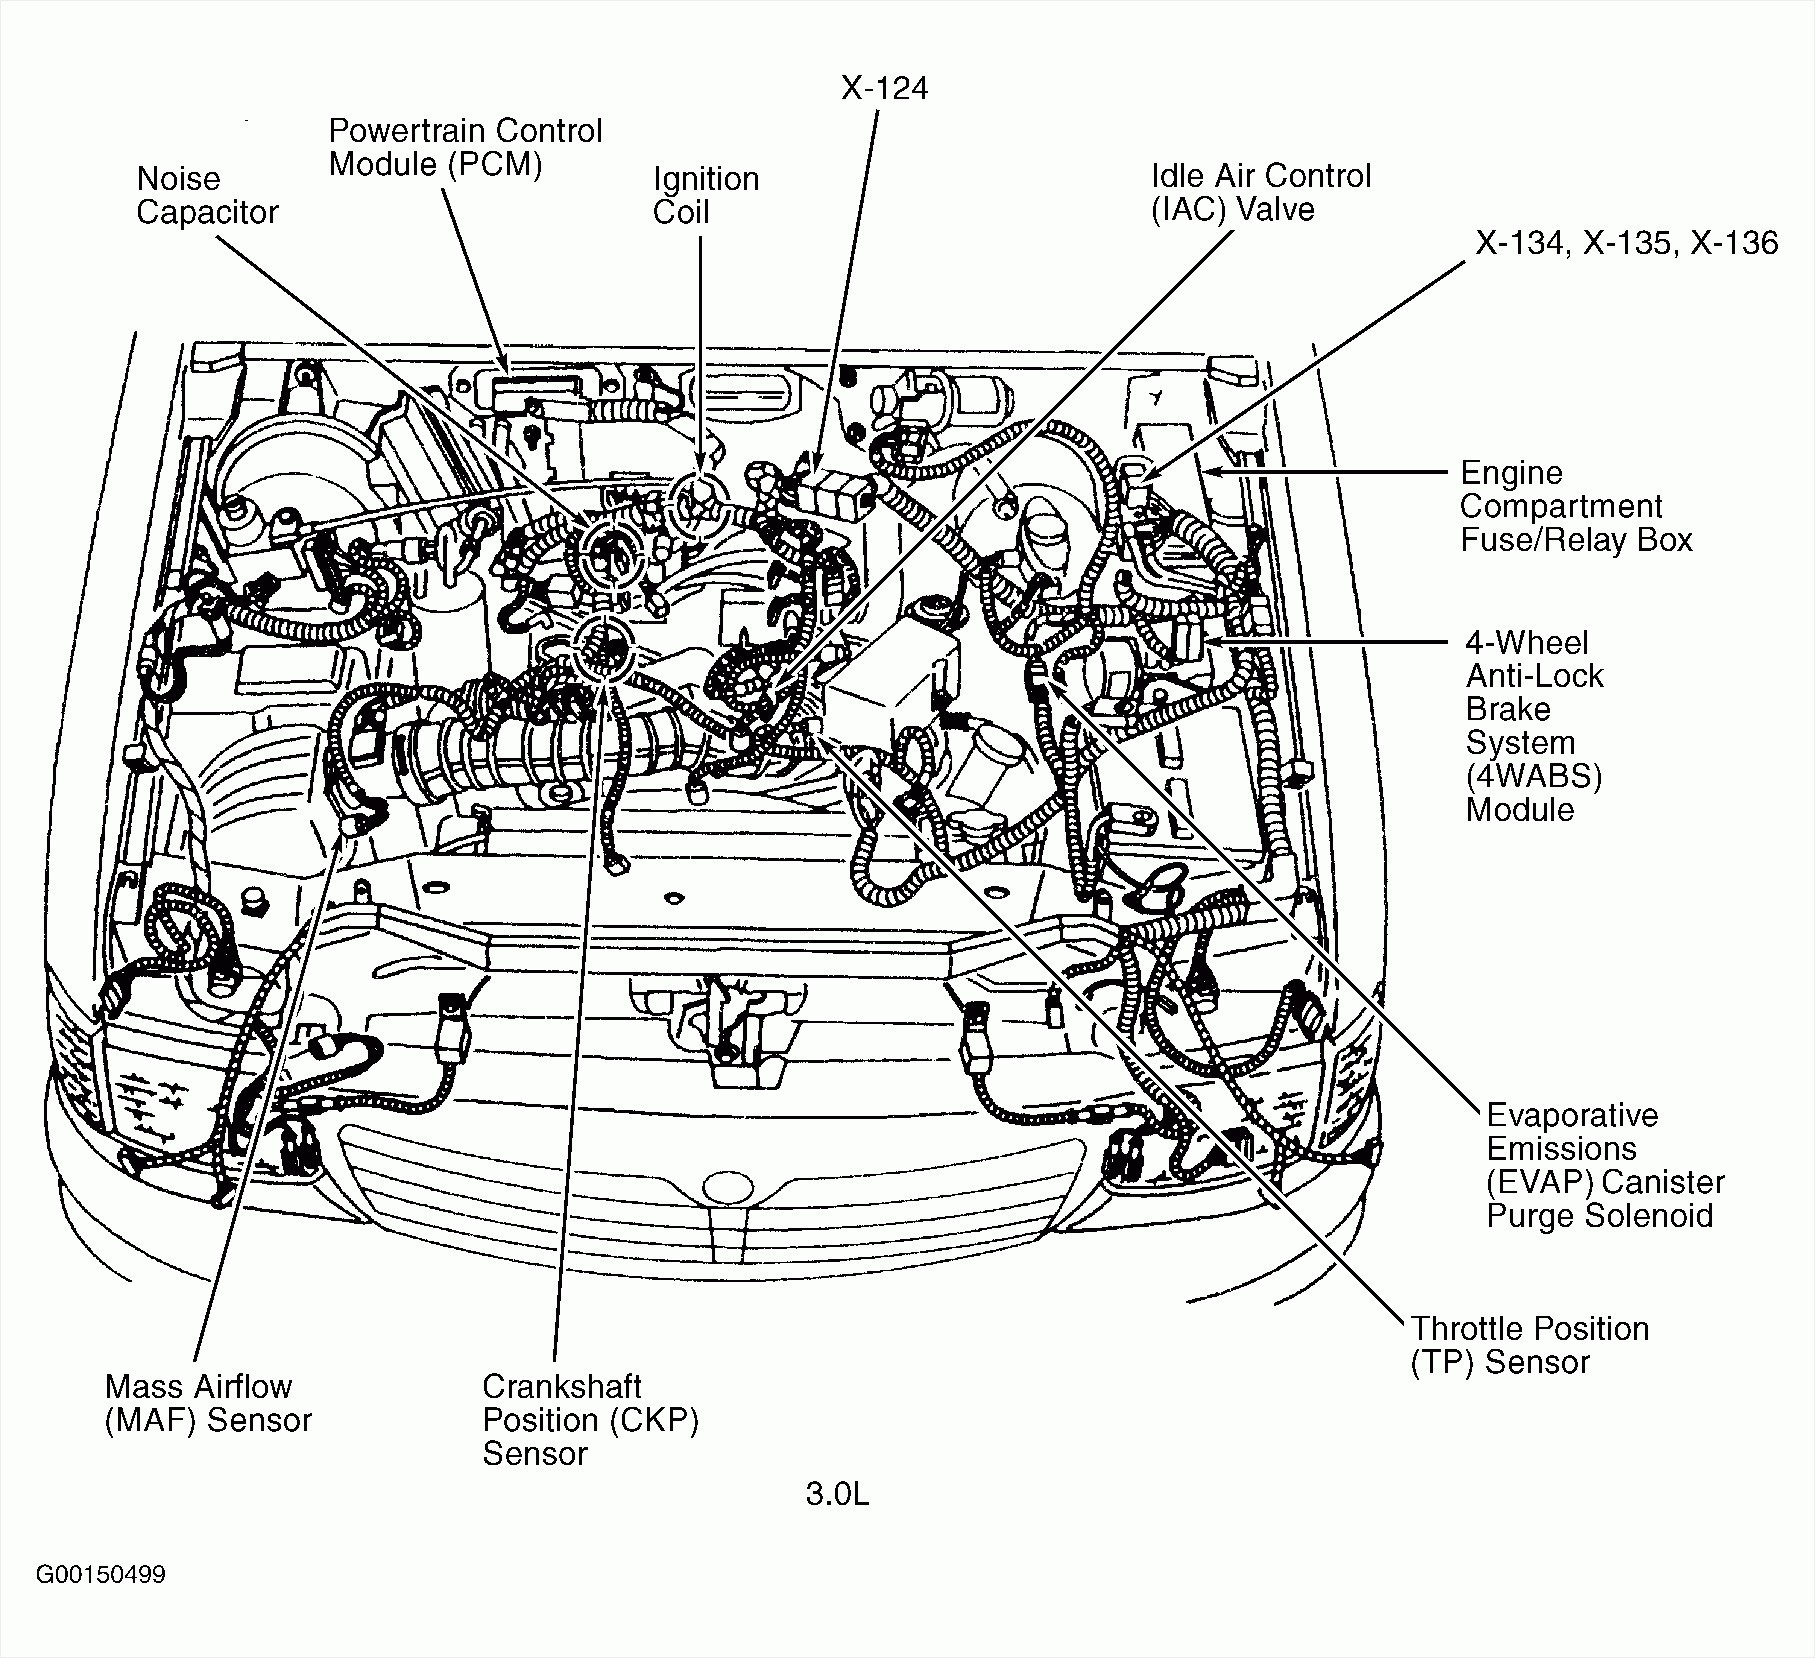 hight resolution of jeep wrangler vacuum diagram besides 2000 ford taurus engine diagram furthermore 2007 ford mustang heater core box diagram besides saab 9 5